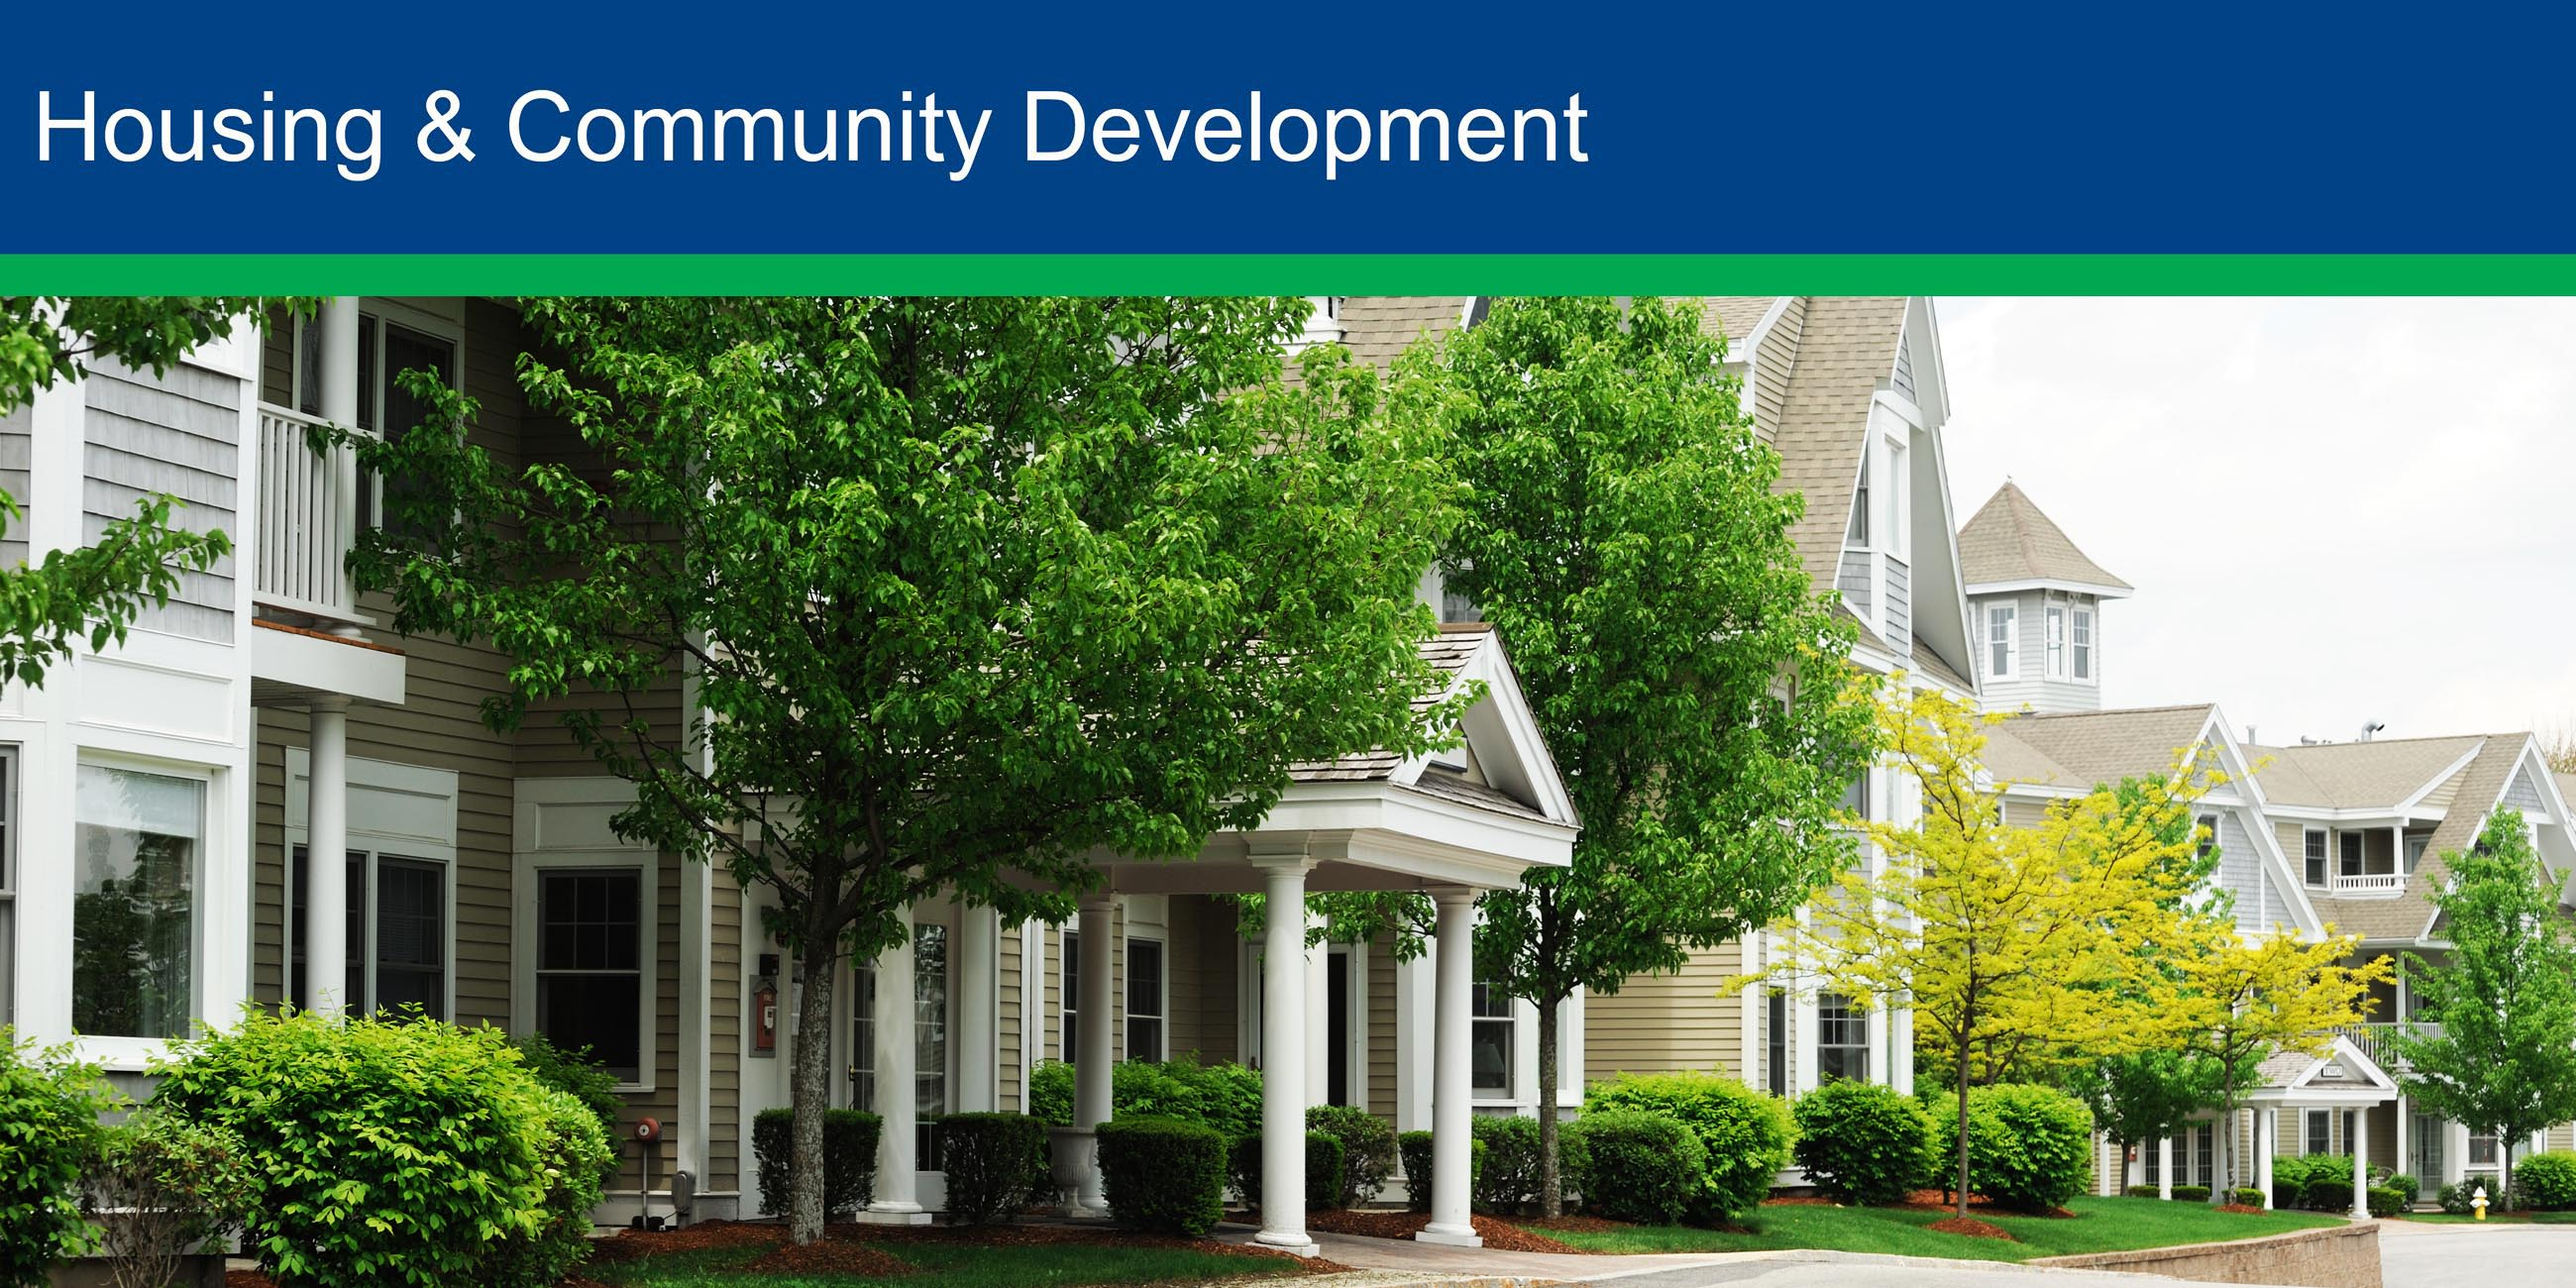 Housing and Community Development june 2017